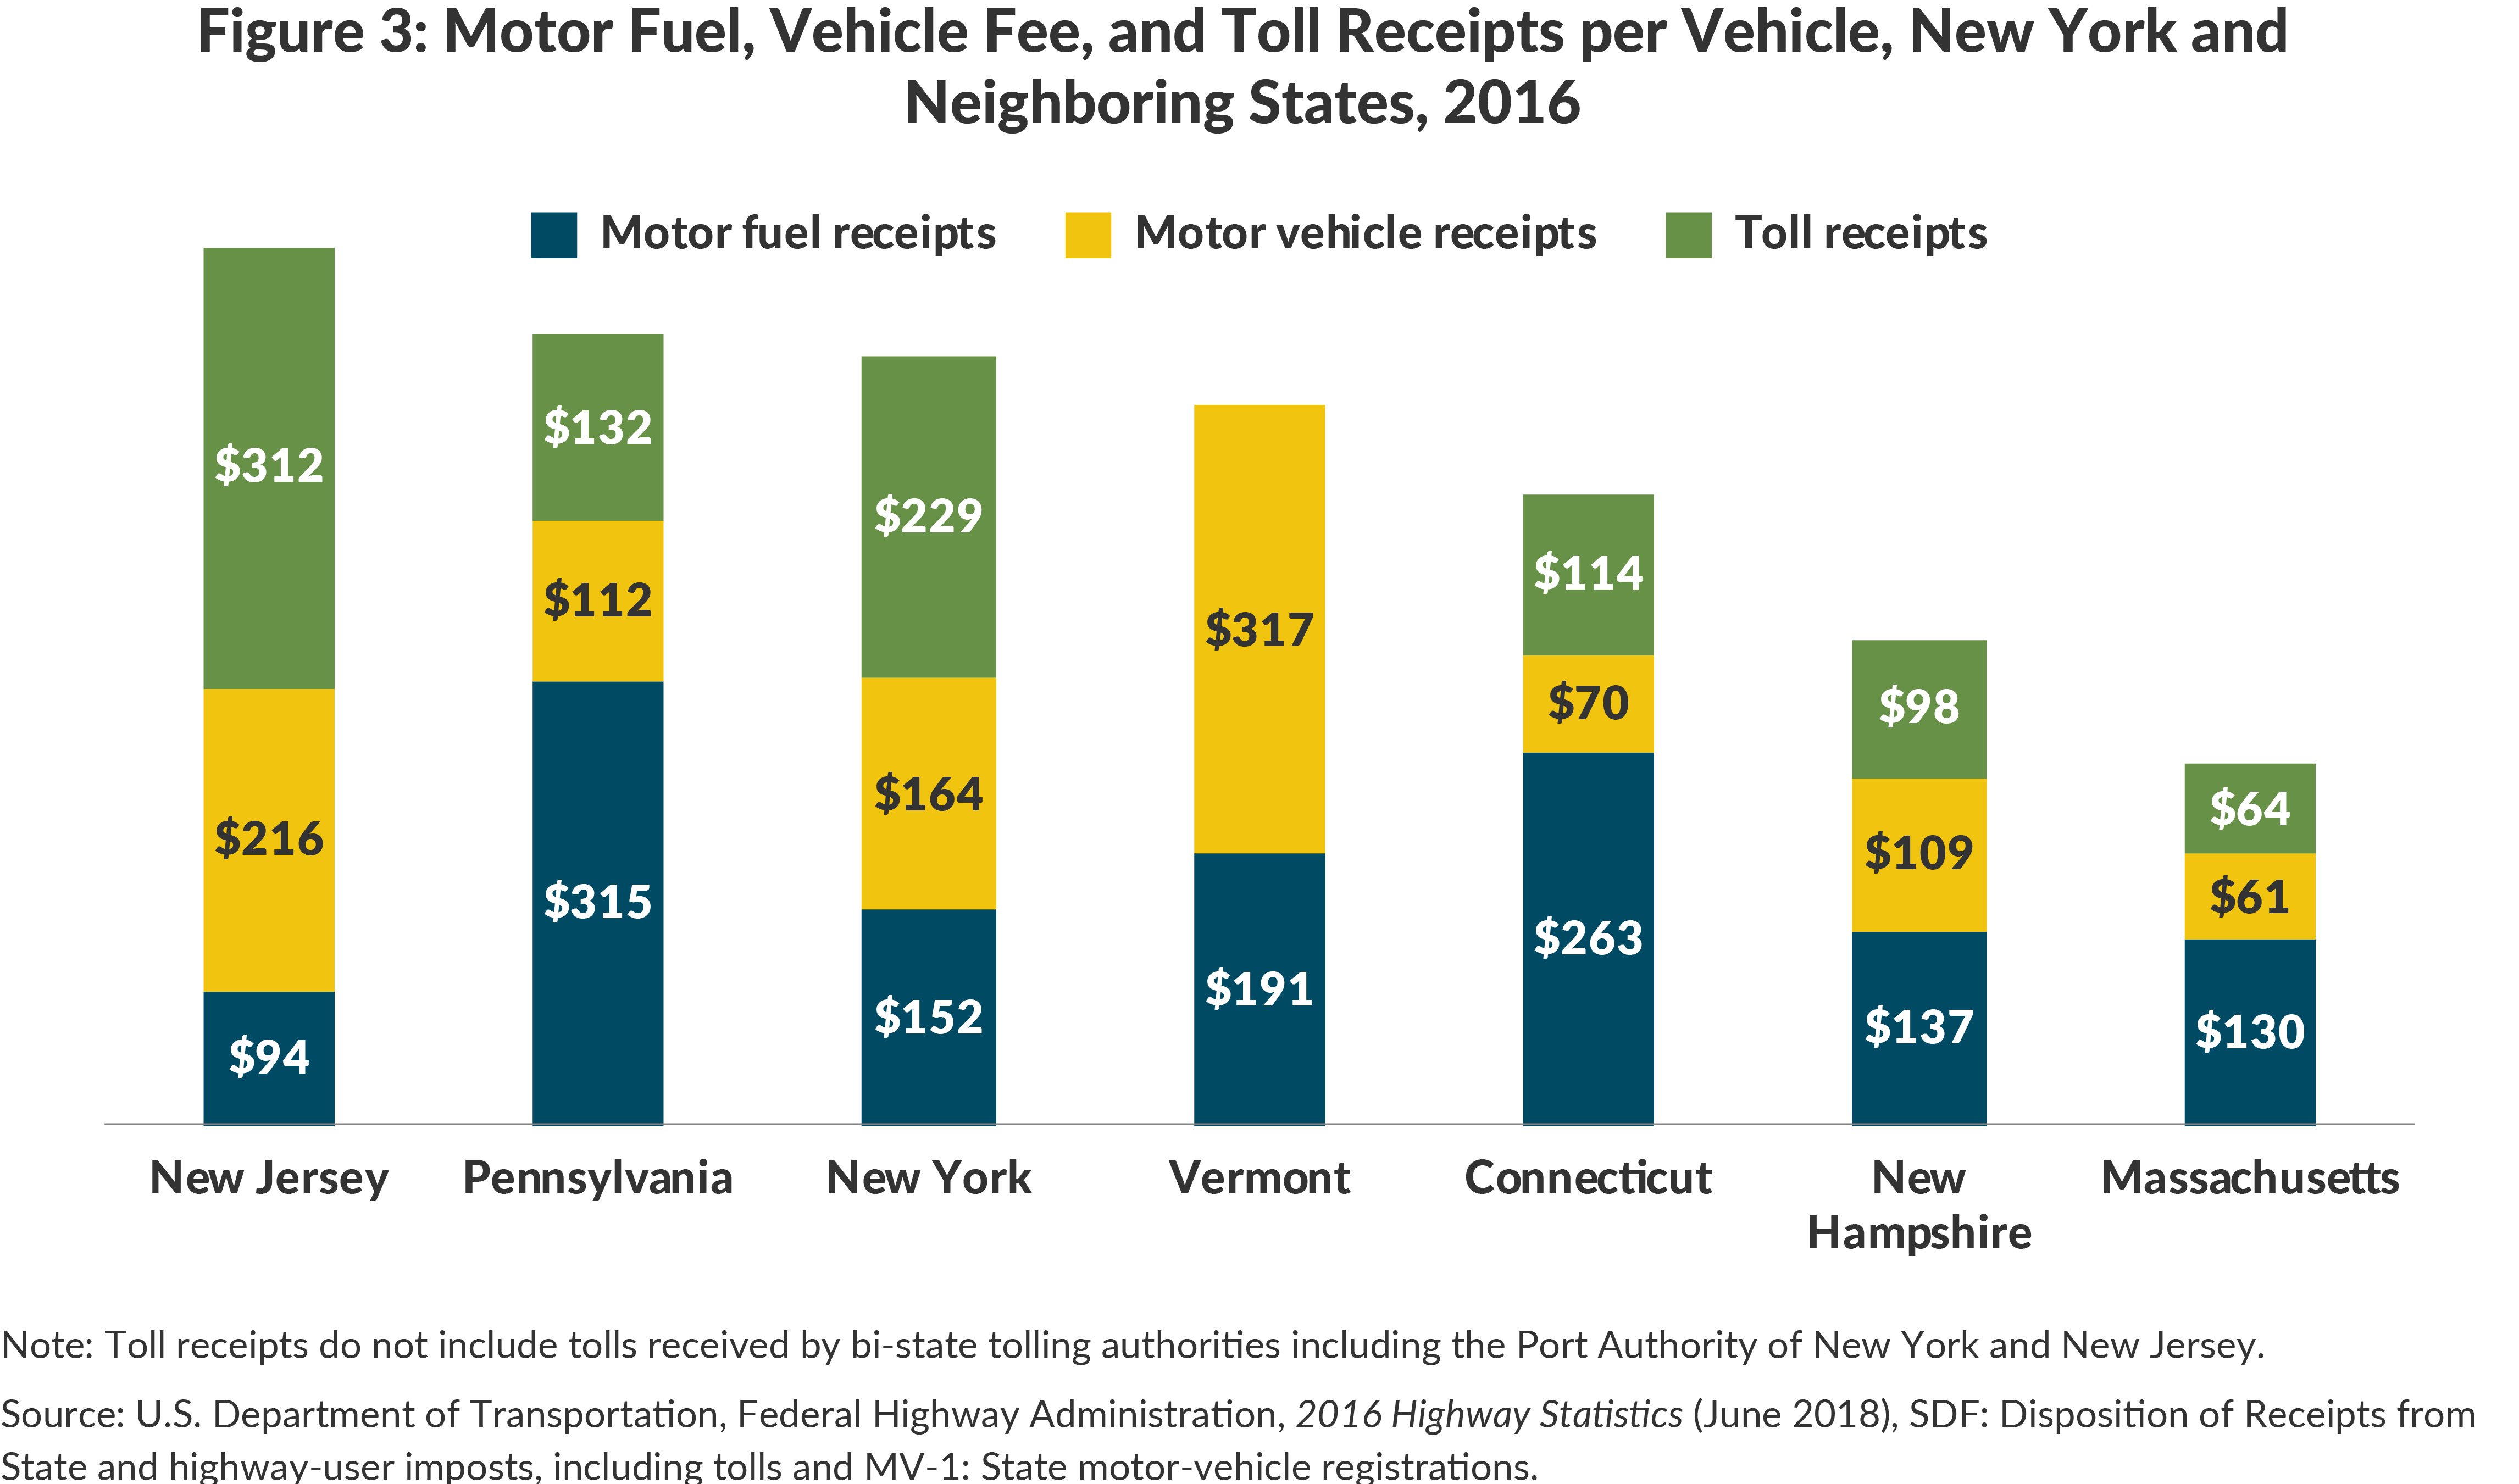 Figure 3: Motor Fuel Receipts, Vehicle Fees, and Tolls per Private Vehicle, New York and Neighboring States, 2016